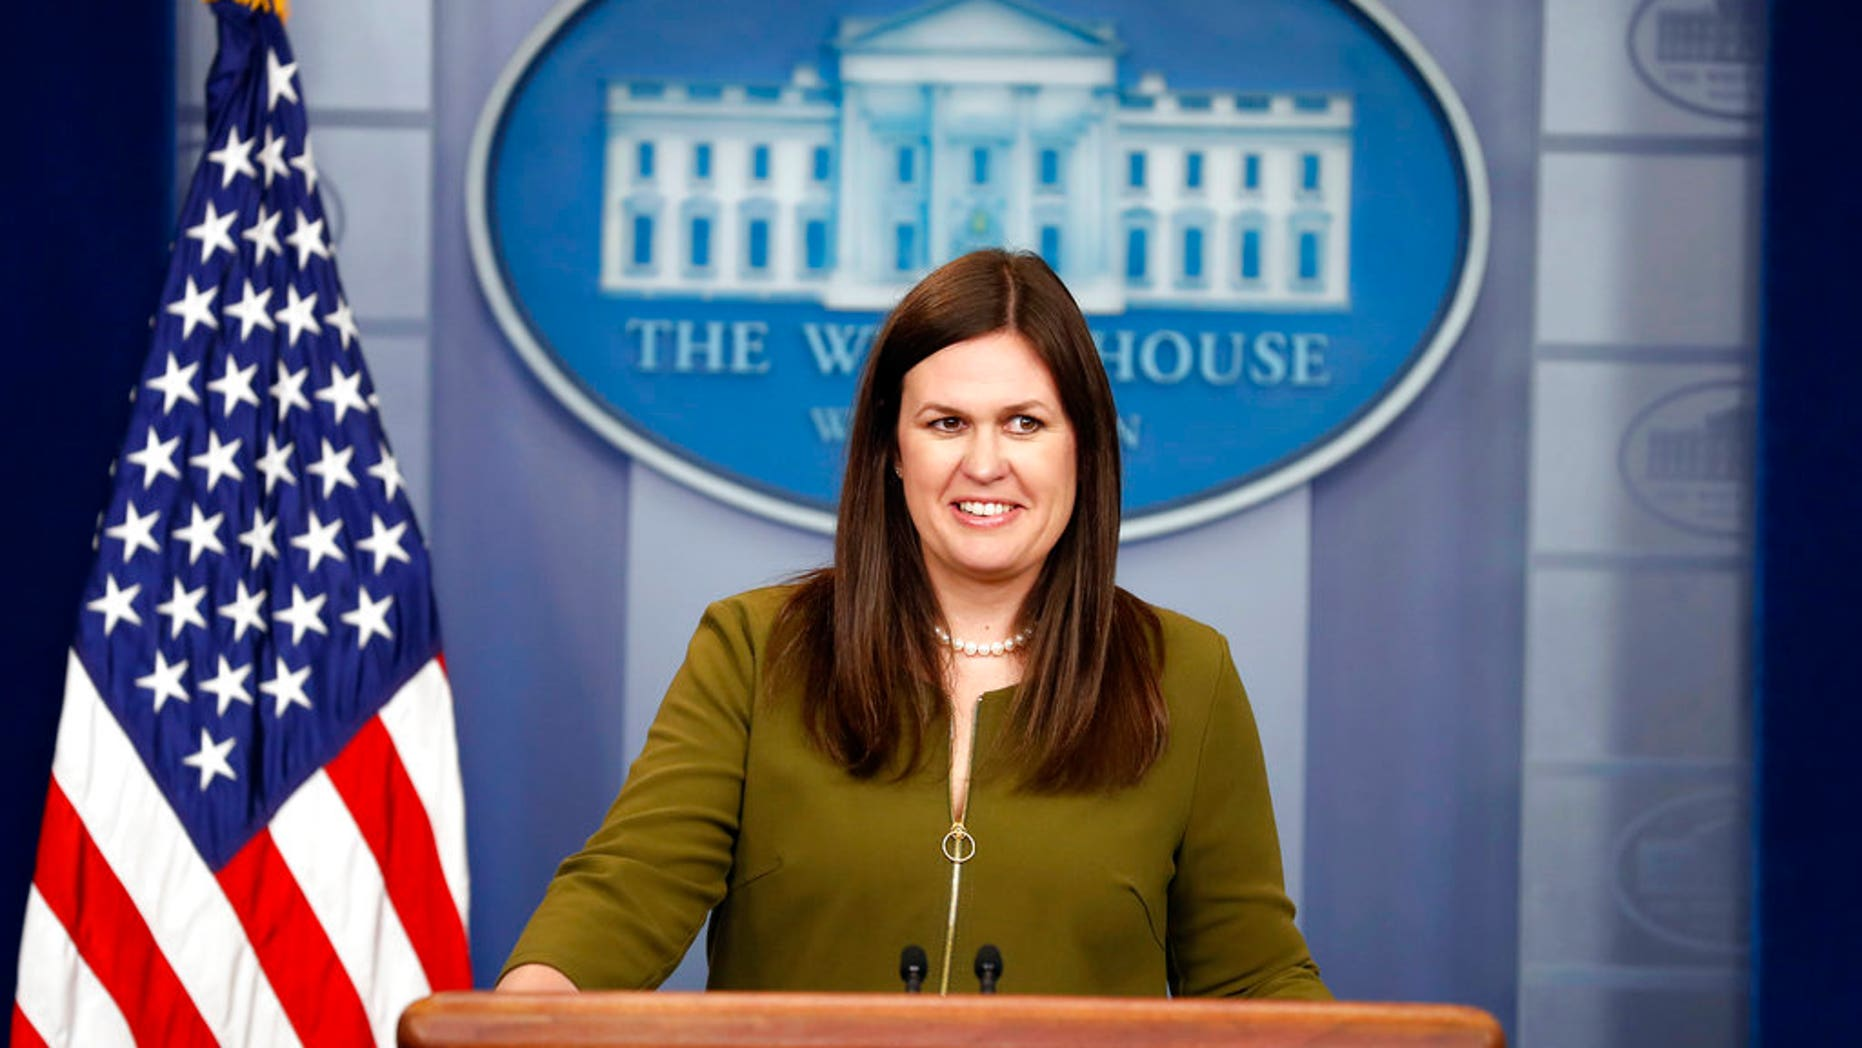 Deputy White House press secretary Sarah Huckabee Sanders smiles as she speaks during an off-camera press briefing at the White House in Washington, Tuesday, July 18, 2017. (AP Photo/Alex Brandon)